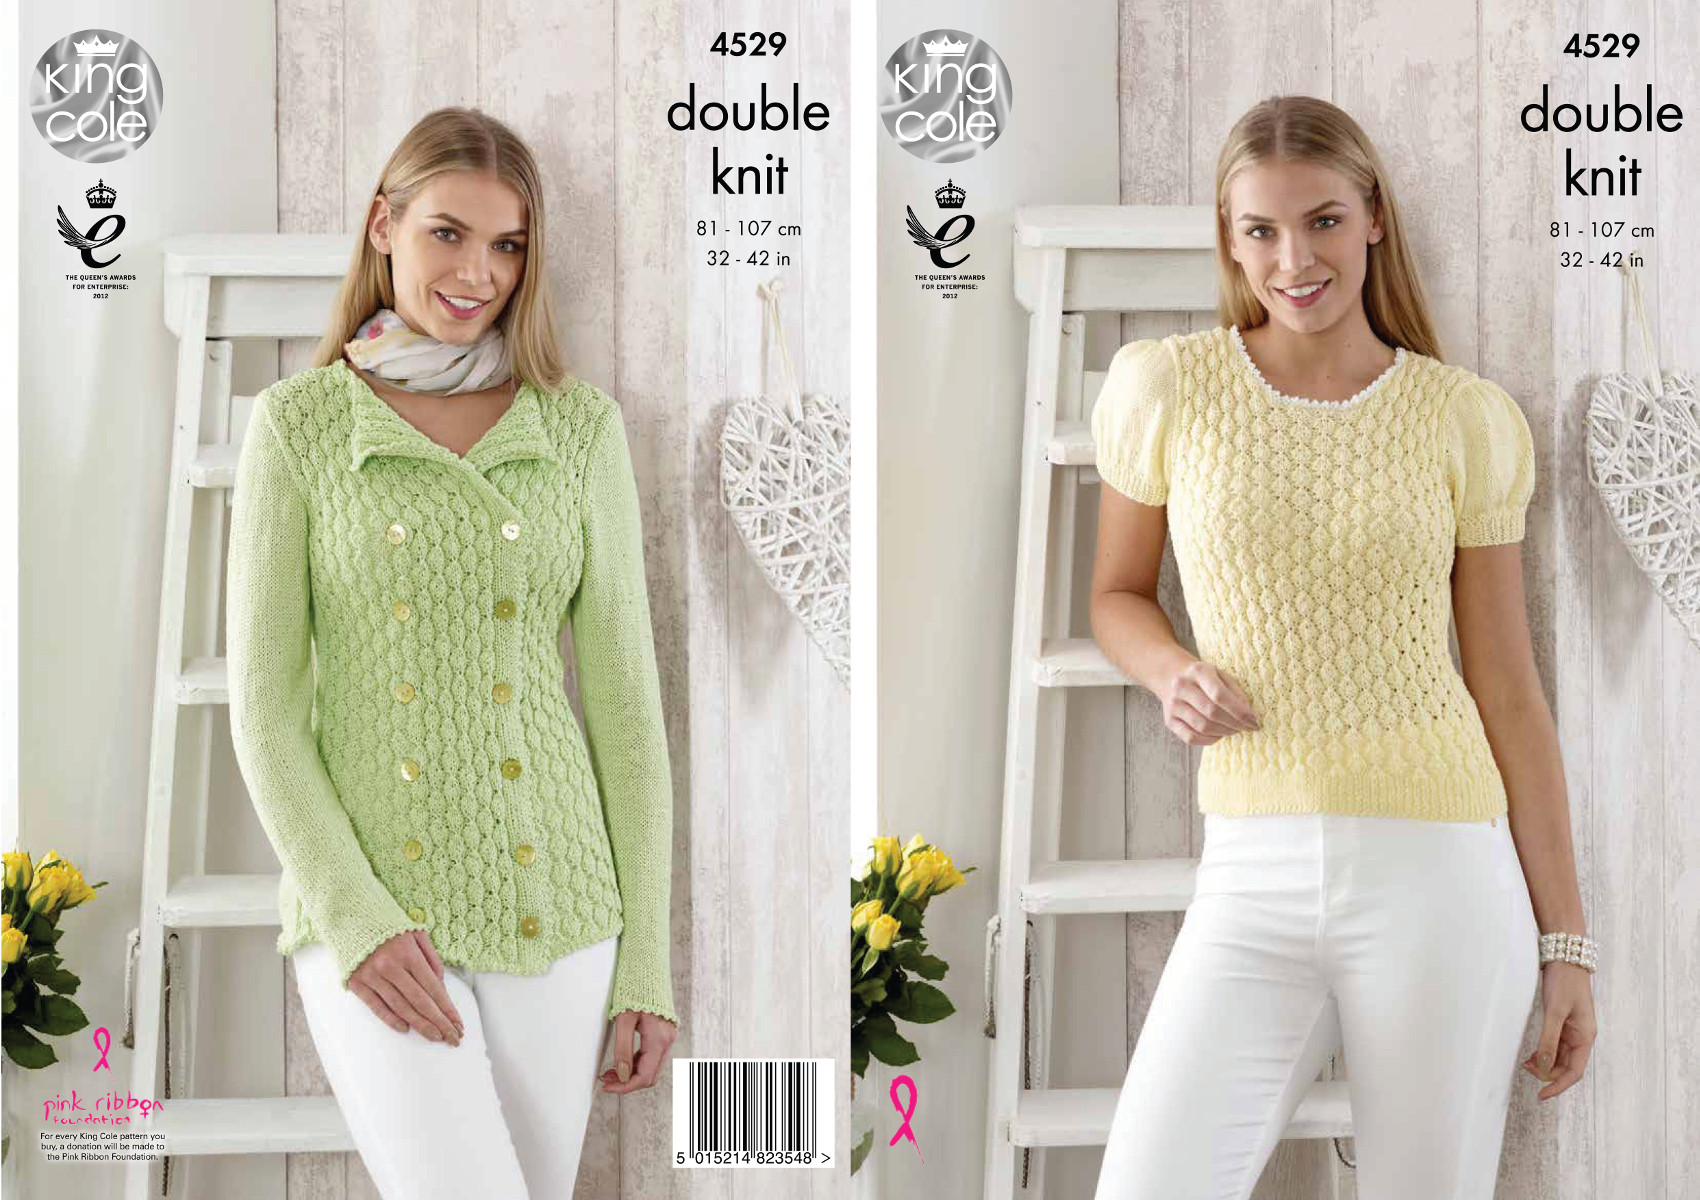 Details about King Cole Womens Double Knitting Pattern Ladies Lace Top Cardigan Giza DK 4529